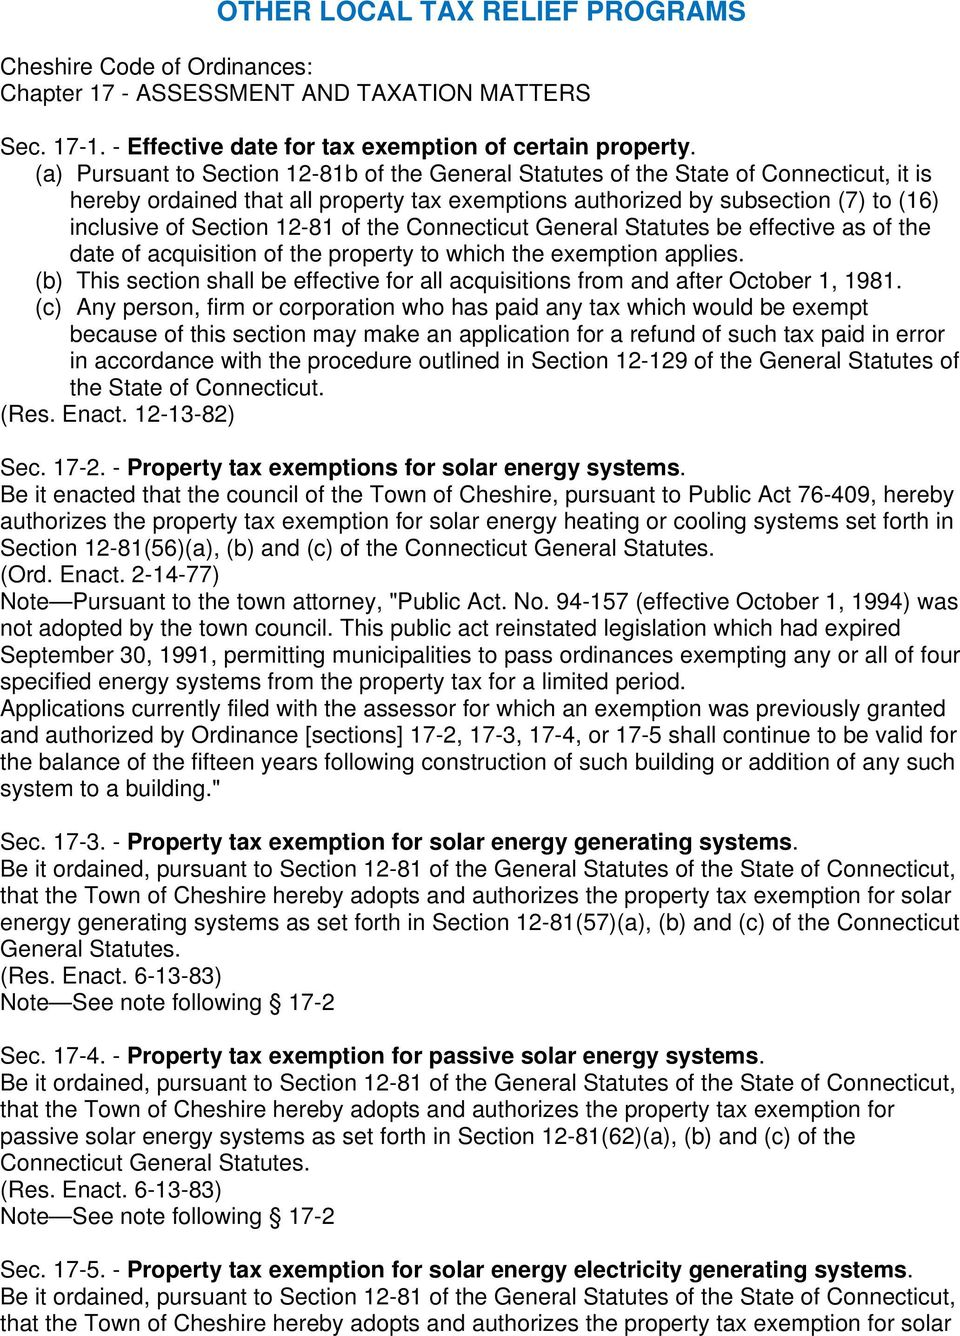 12-81 of the Connecticut General Statutes be effective as of the date of acquisition of the property to which the exemption applies.